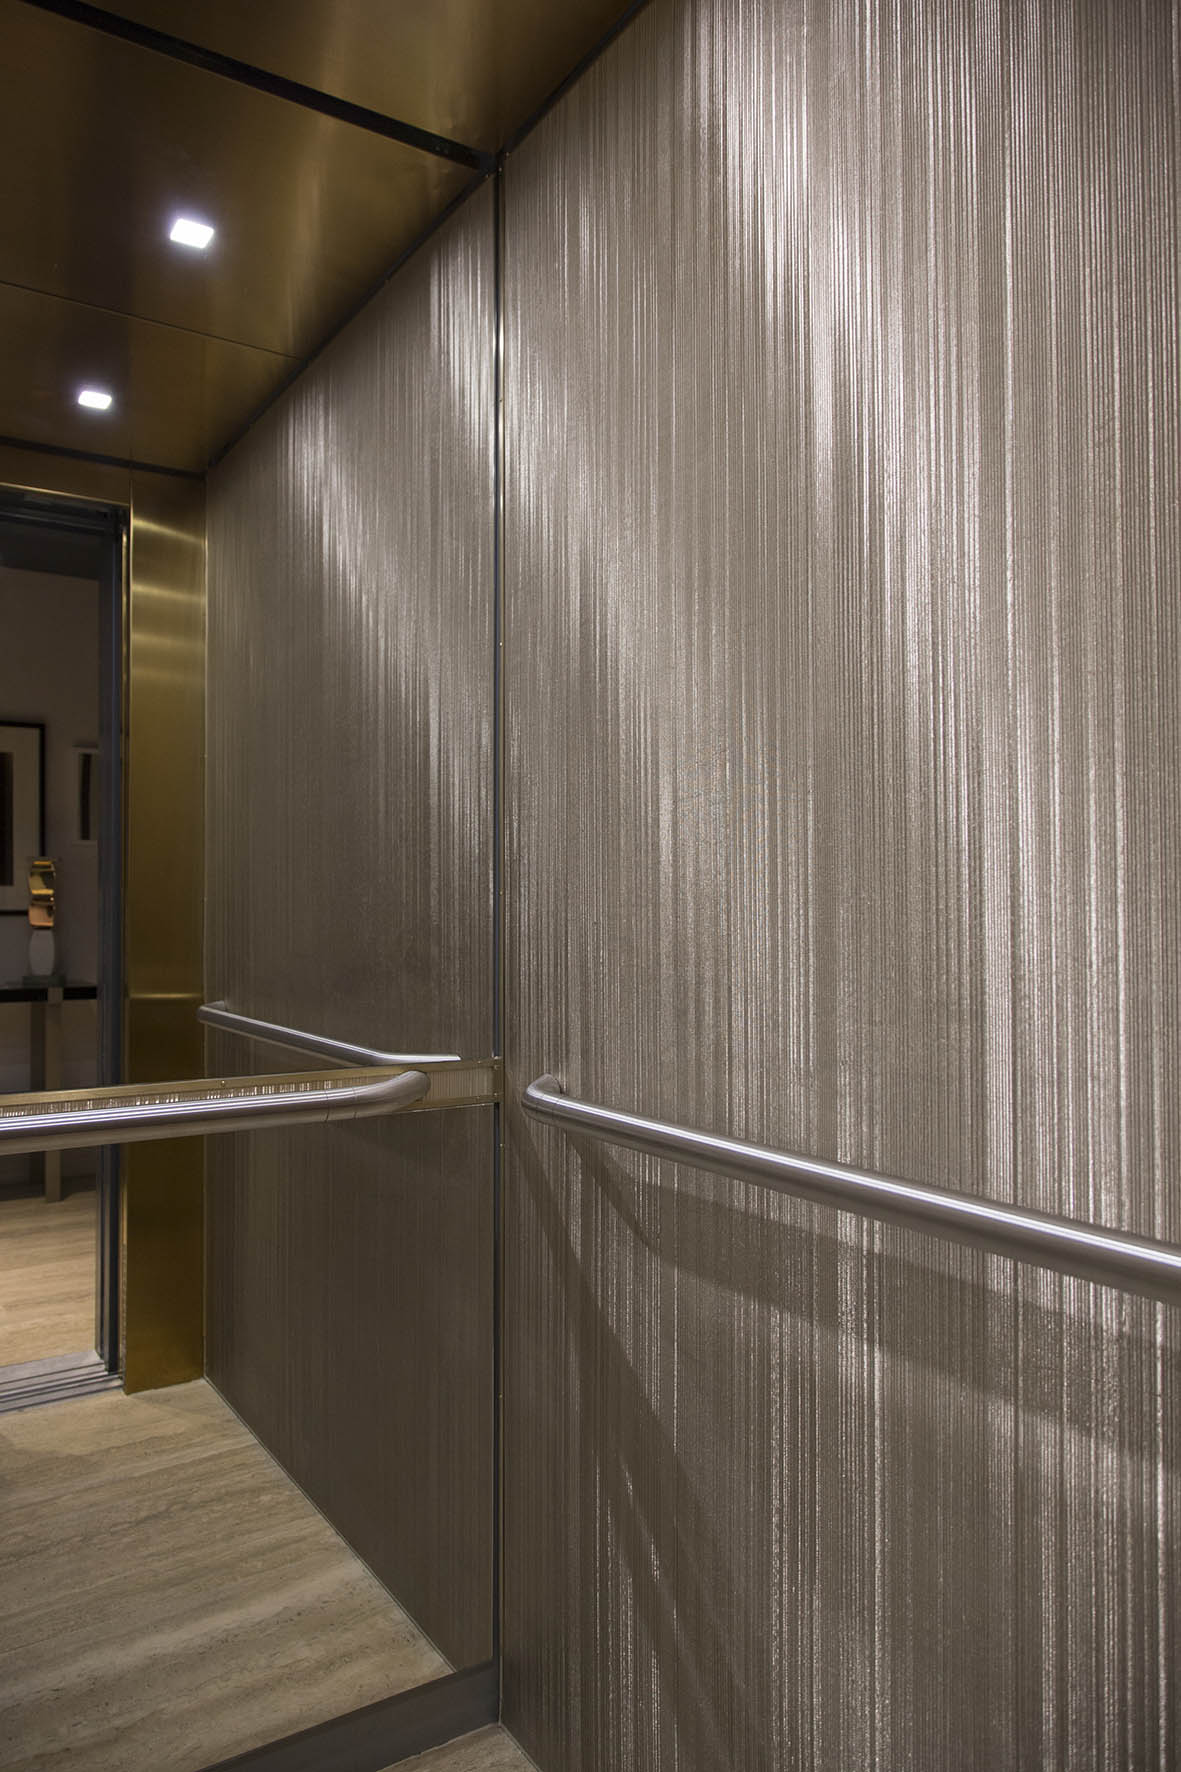 Sophie-Mallebranche-Paris-Hospitality-Le-Marianne-Hotel-Wall-Covering